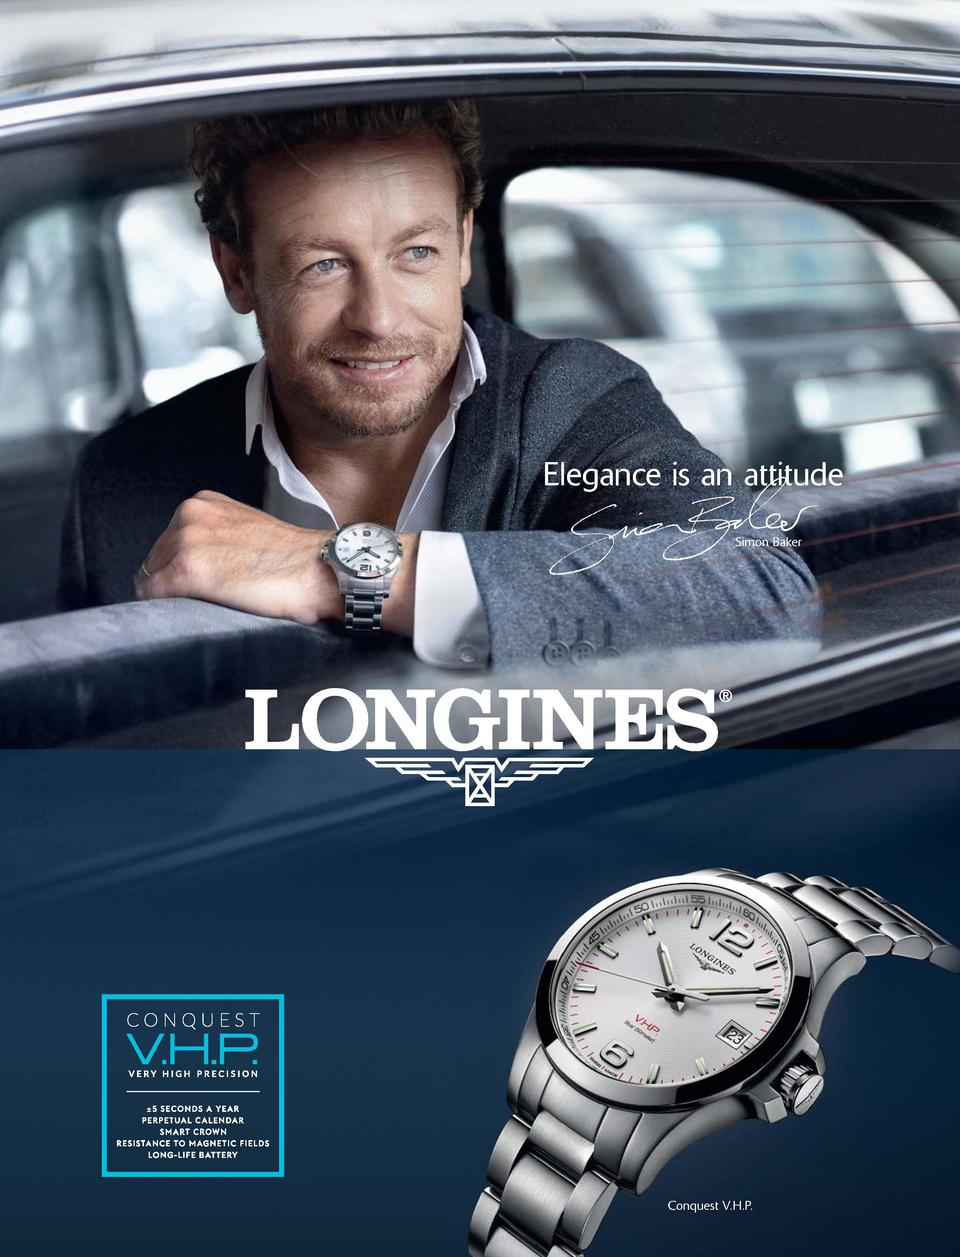 204  Elegance is an attitude Simon Baker  Conquest V.H.P.